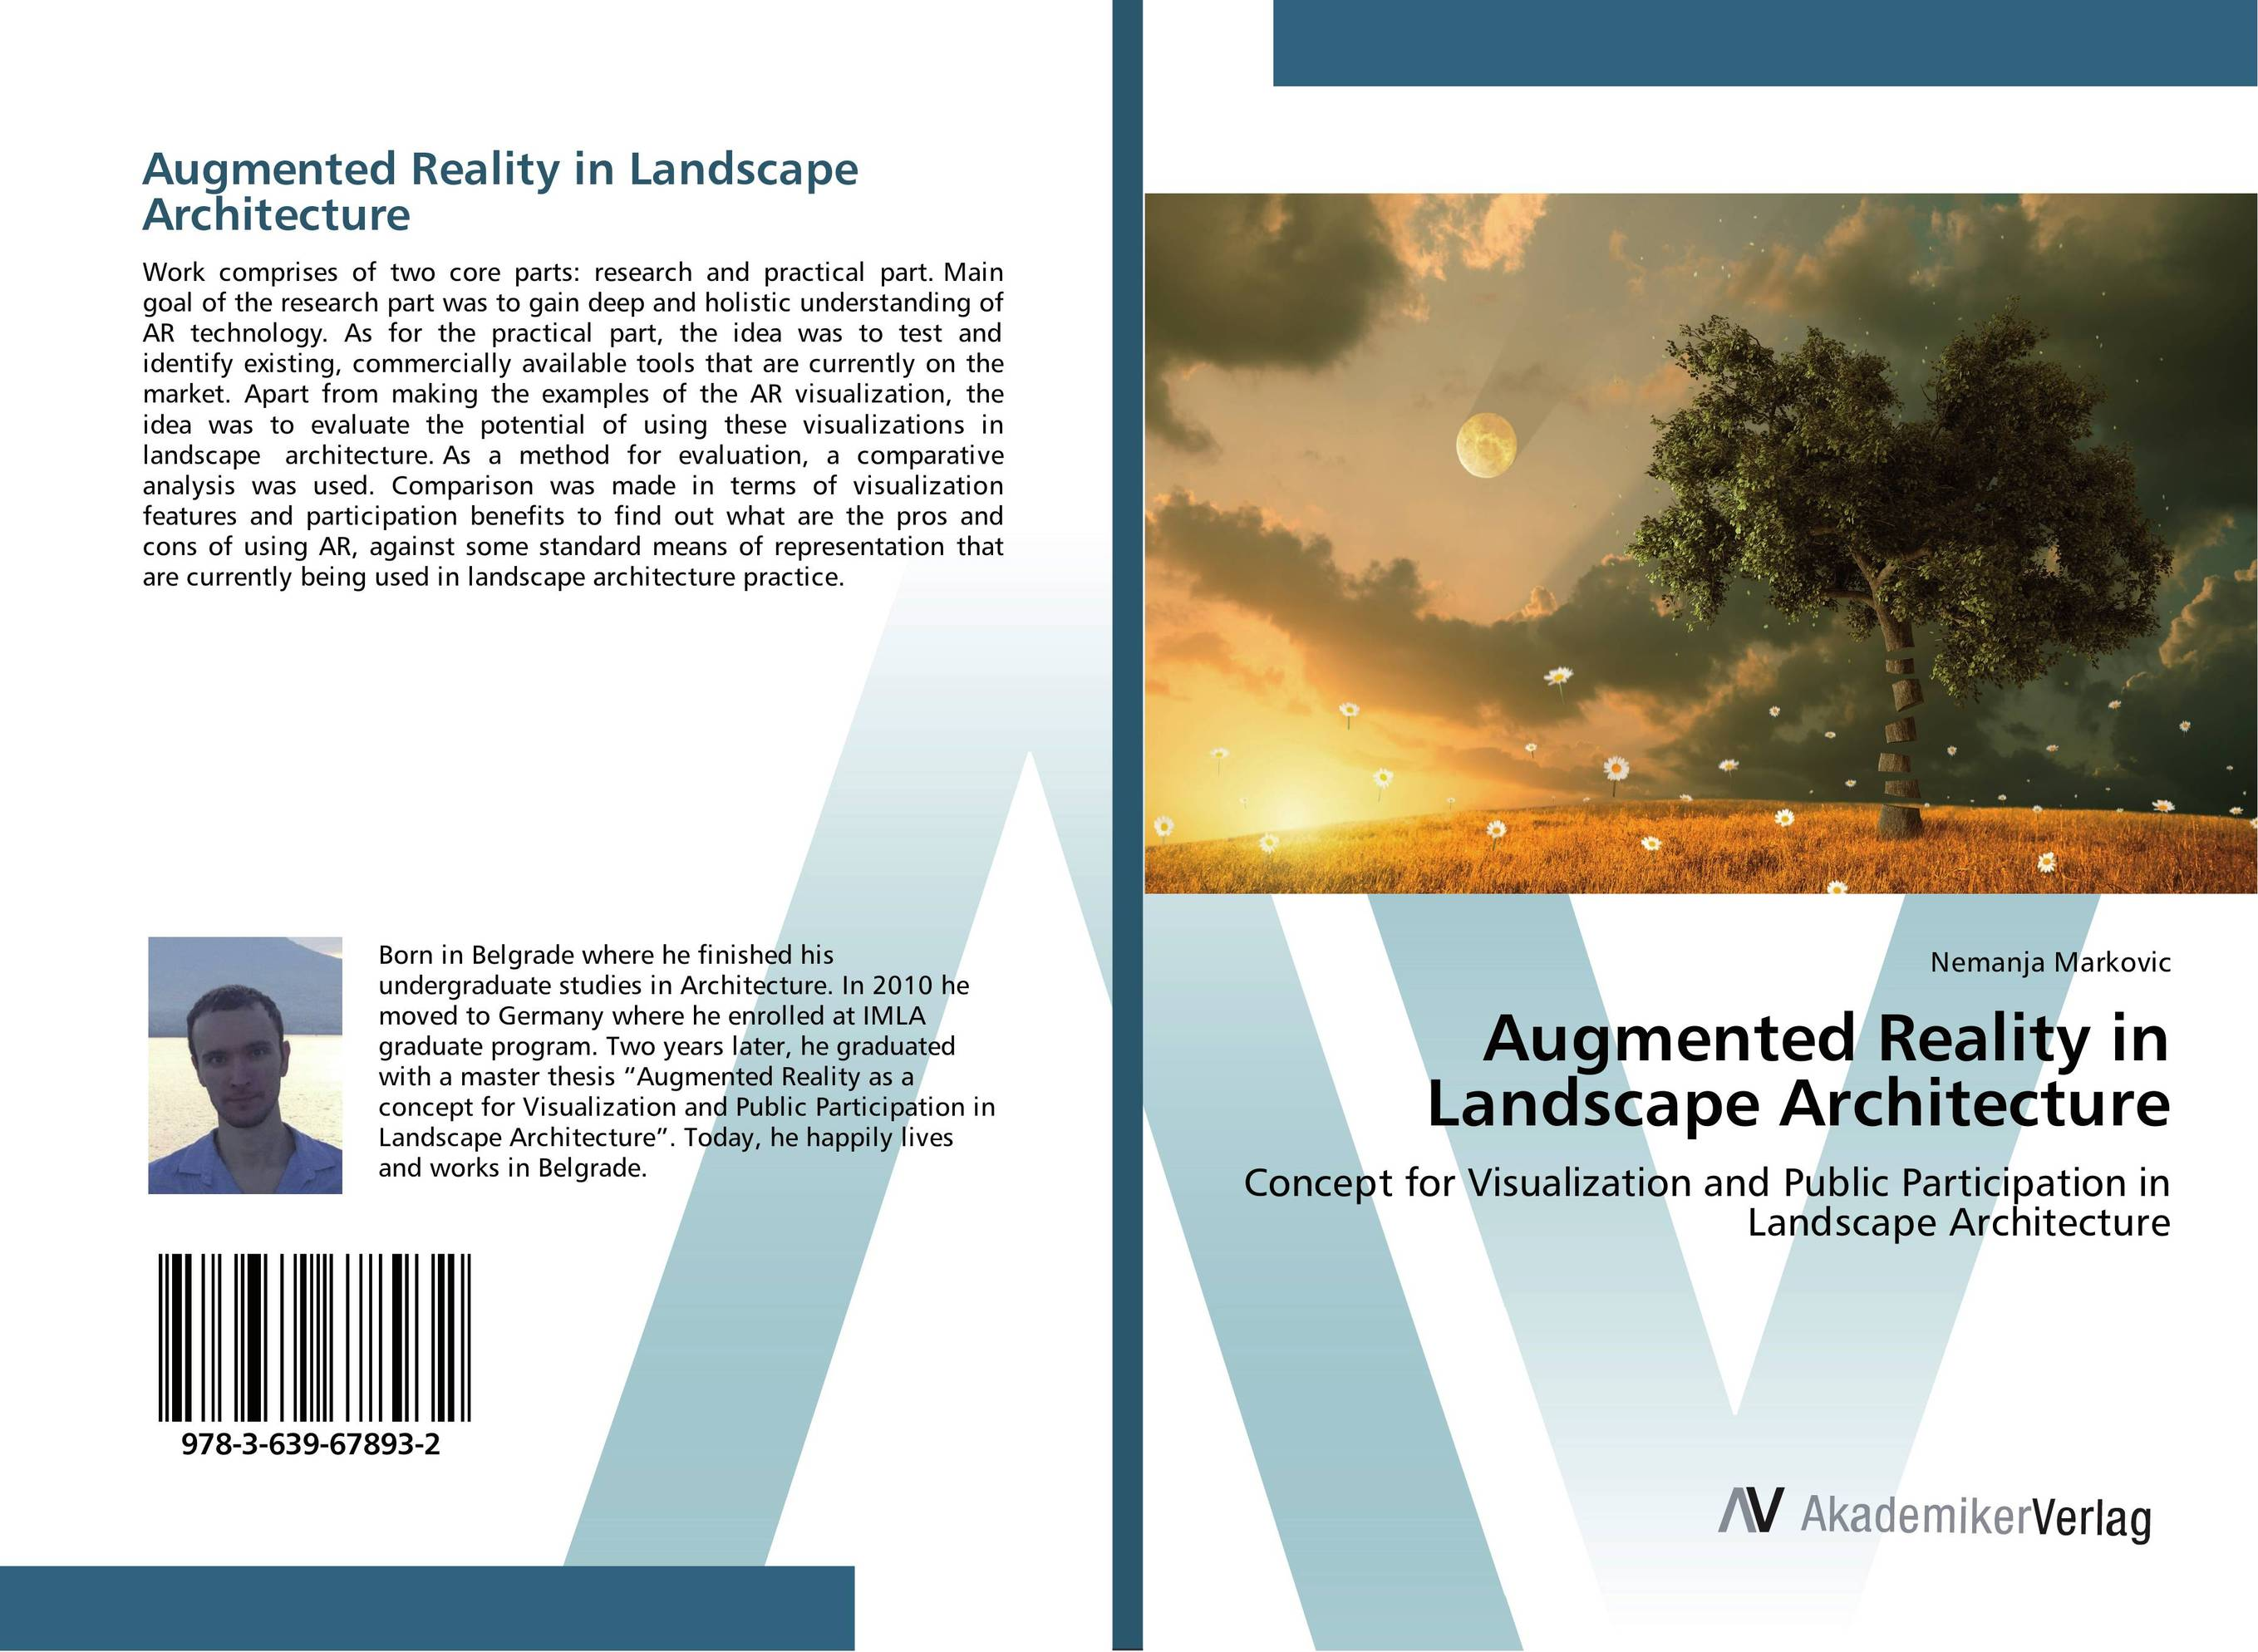 Augmented Reality in Landscape Architecture